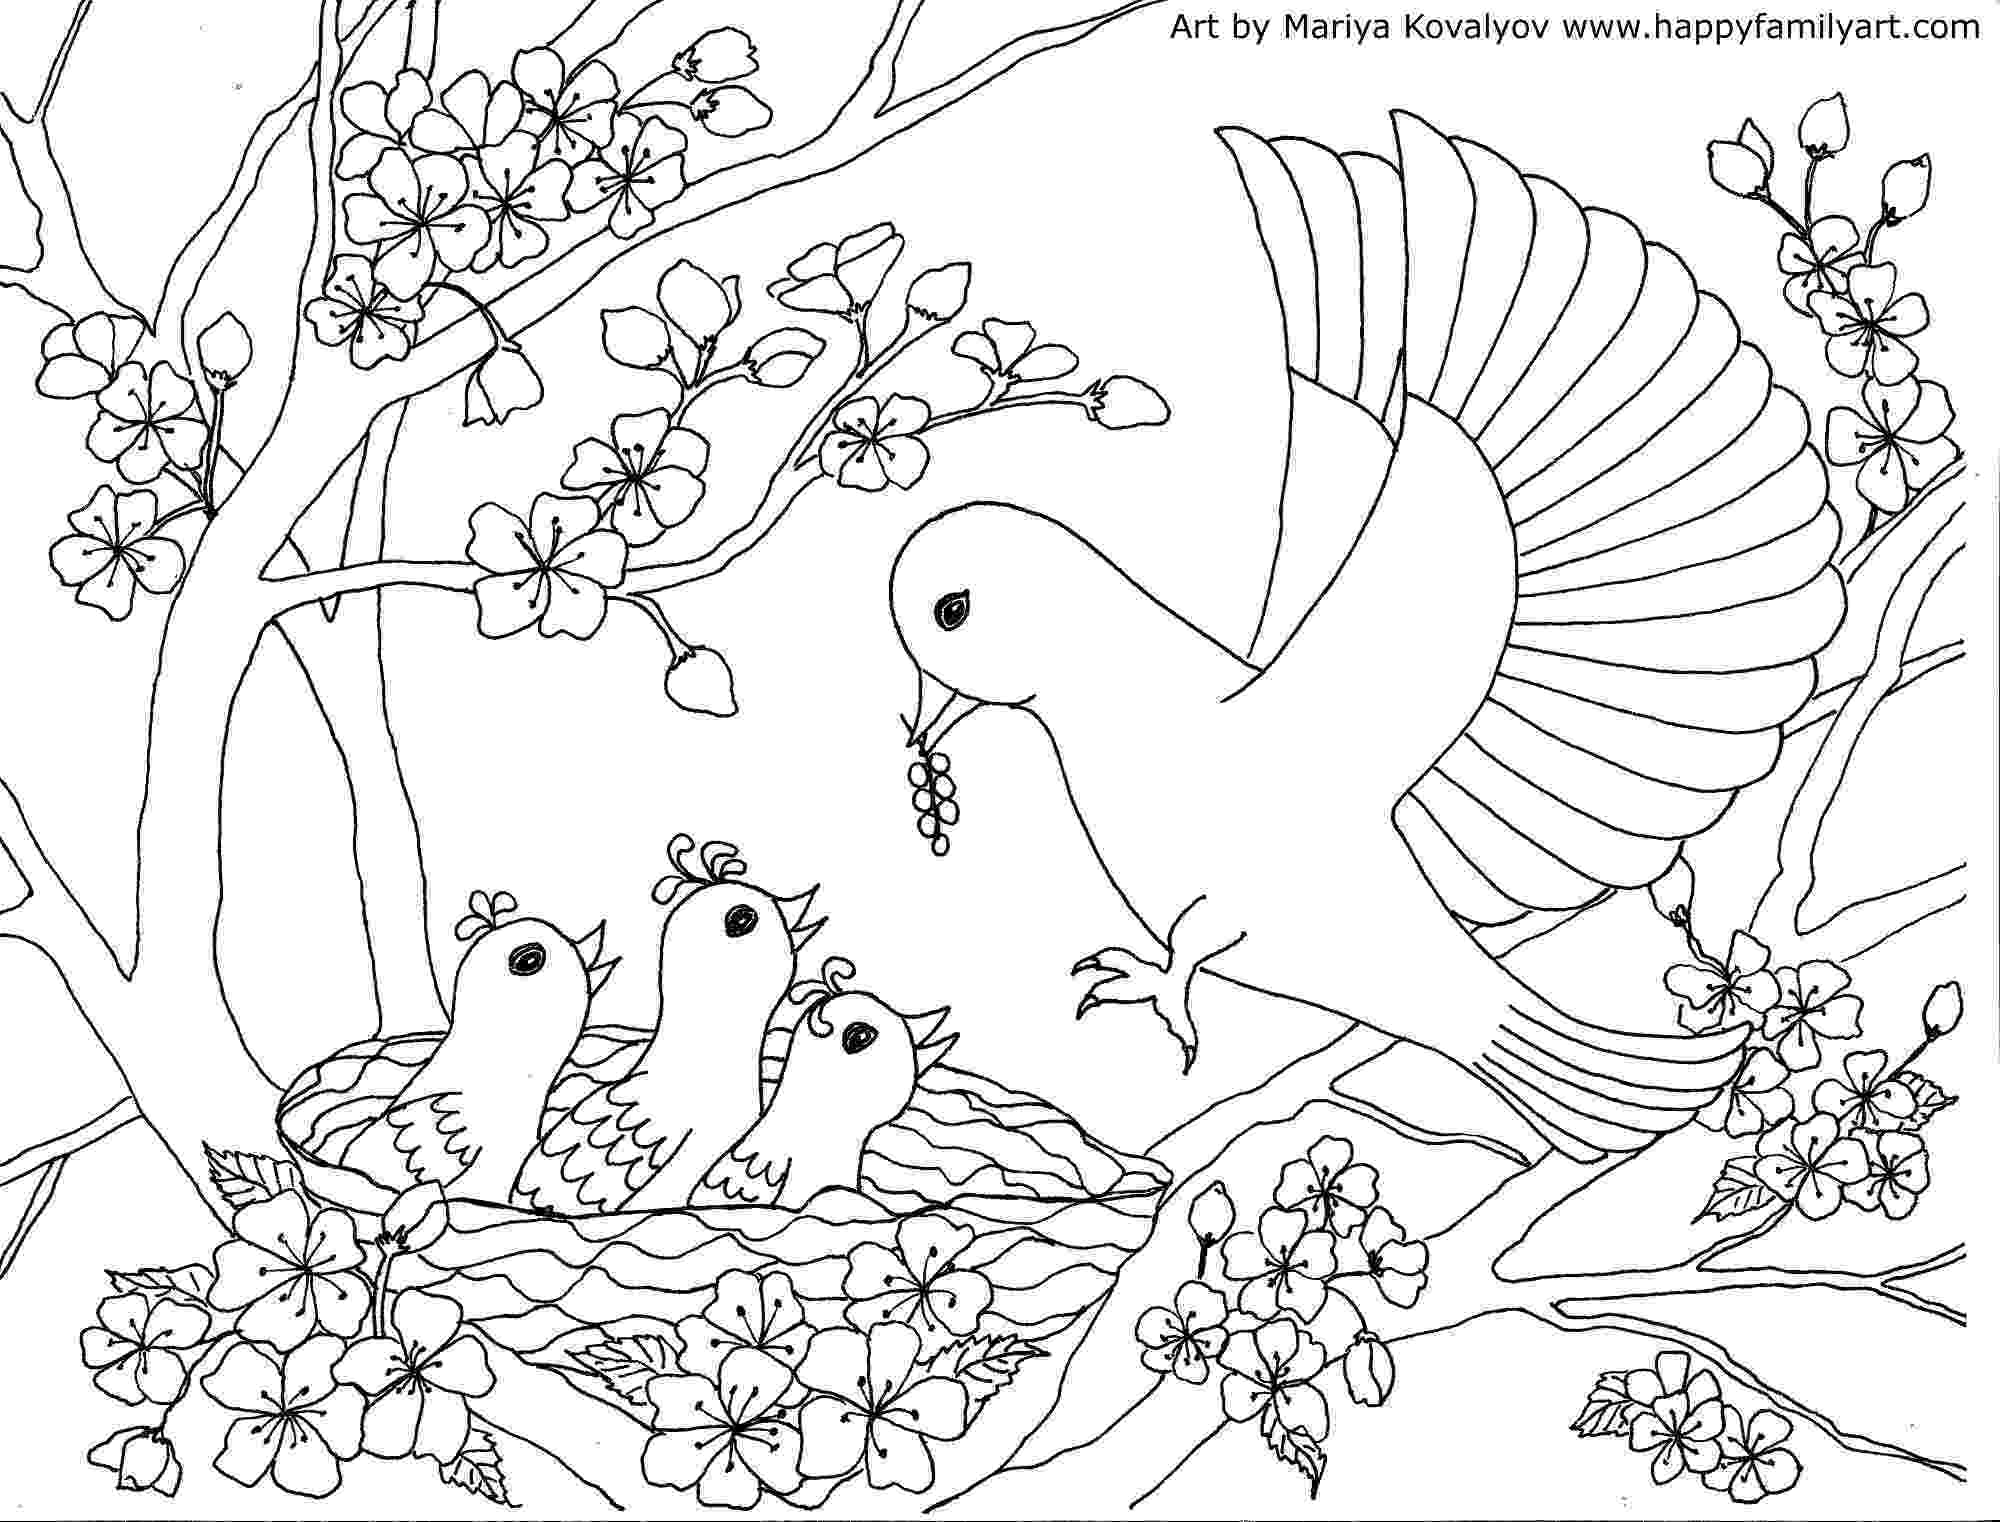 pictures of parrots to colour birds coloring page happy family art colour pictures to of parrots